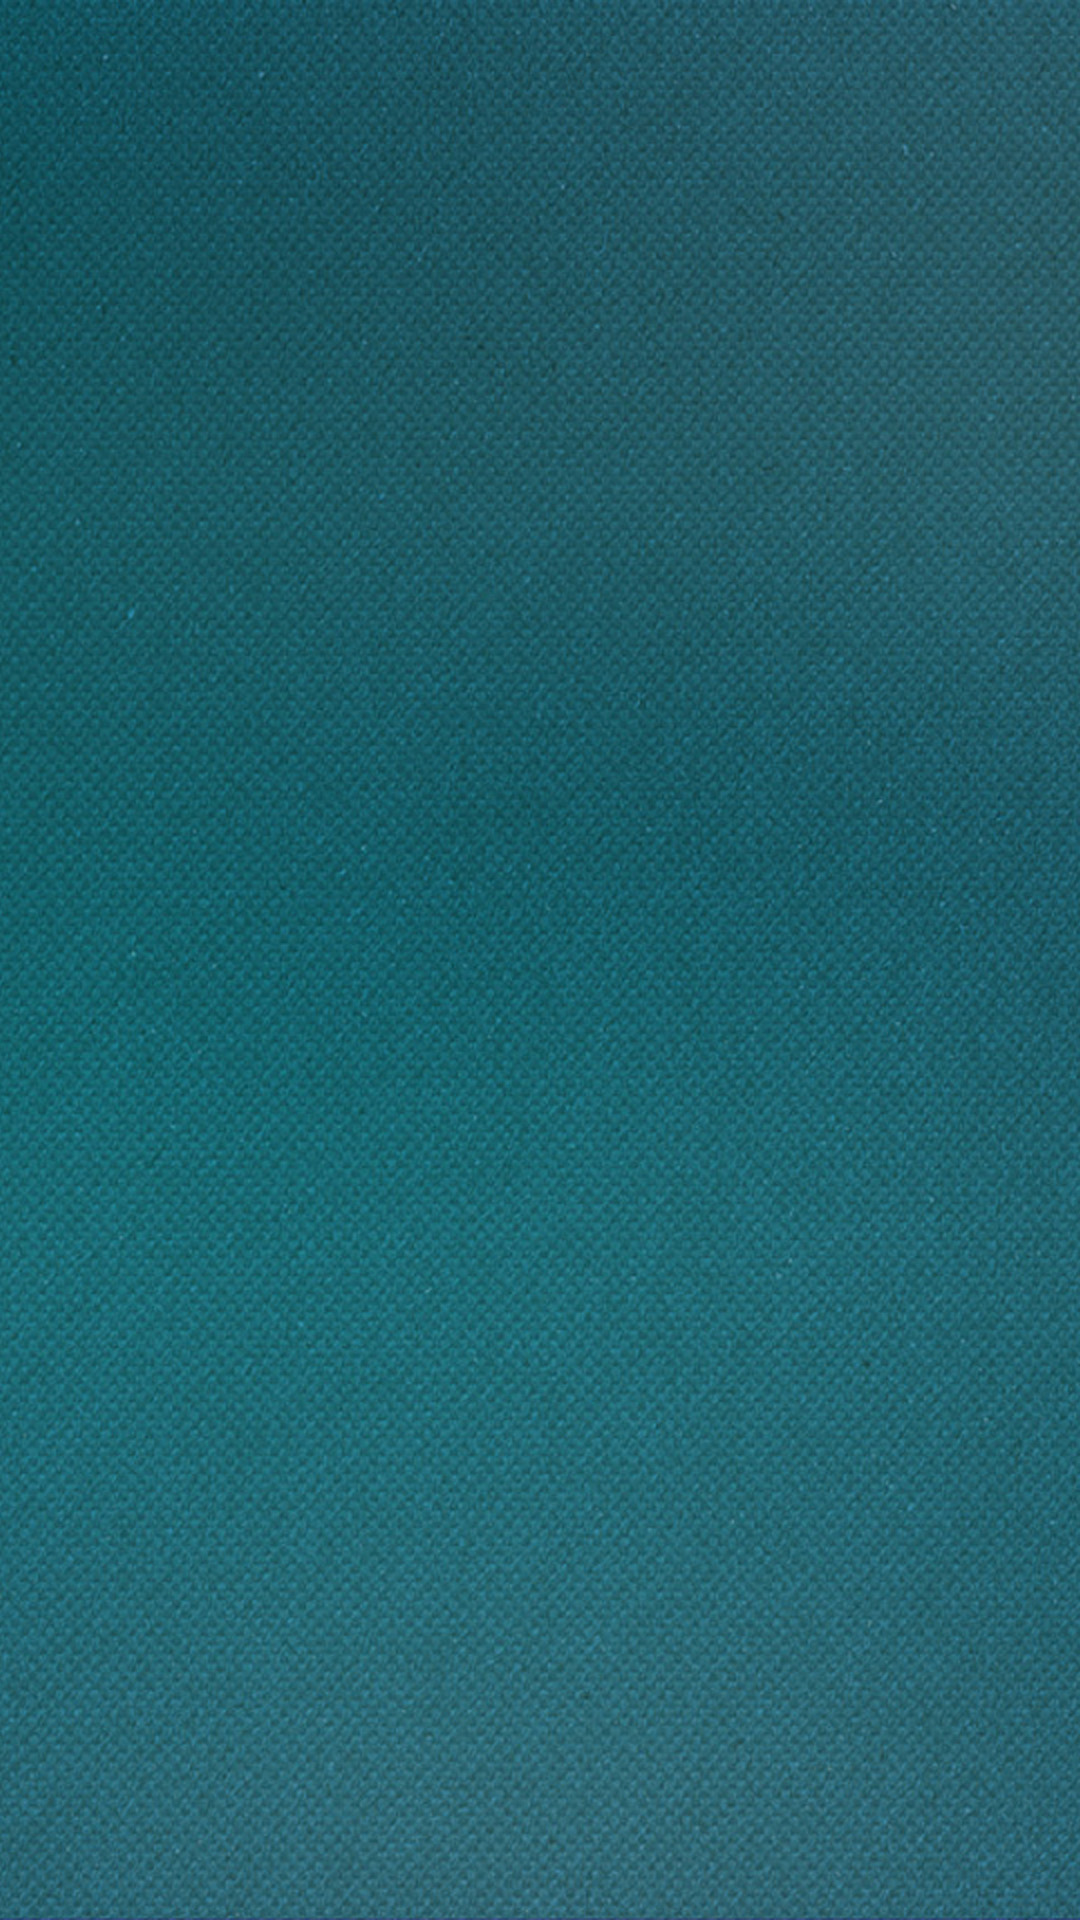 turquoise hd wallpaper - photo #22